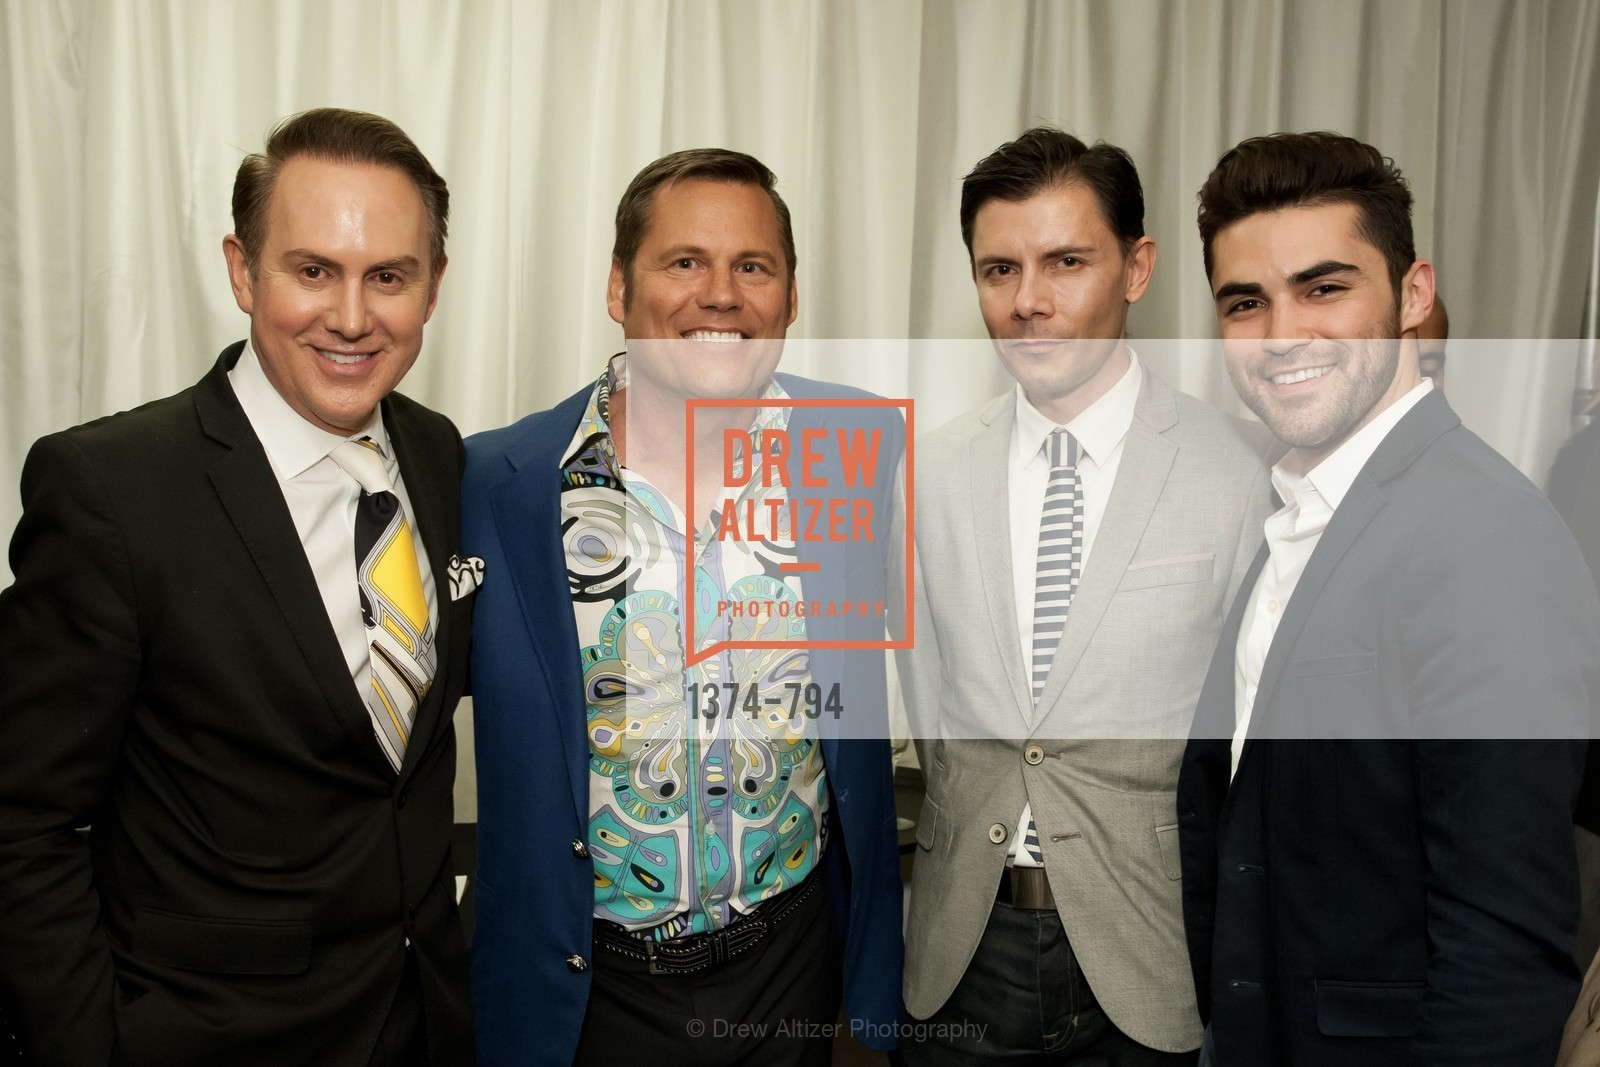 Joel Goodrich, Mark Calvano, Damian Matthews, EPI CENTER MedSpa Anniversary and Launch of REPLETE - Evening Celebration, US, April 21st, 2015,Drew Altizer, Drew Altizer Photography, full-service agency, private events, San Francisco photographer, photographer california